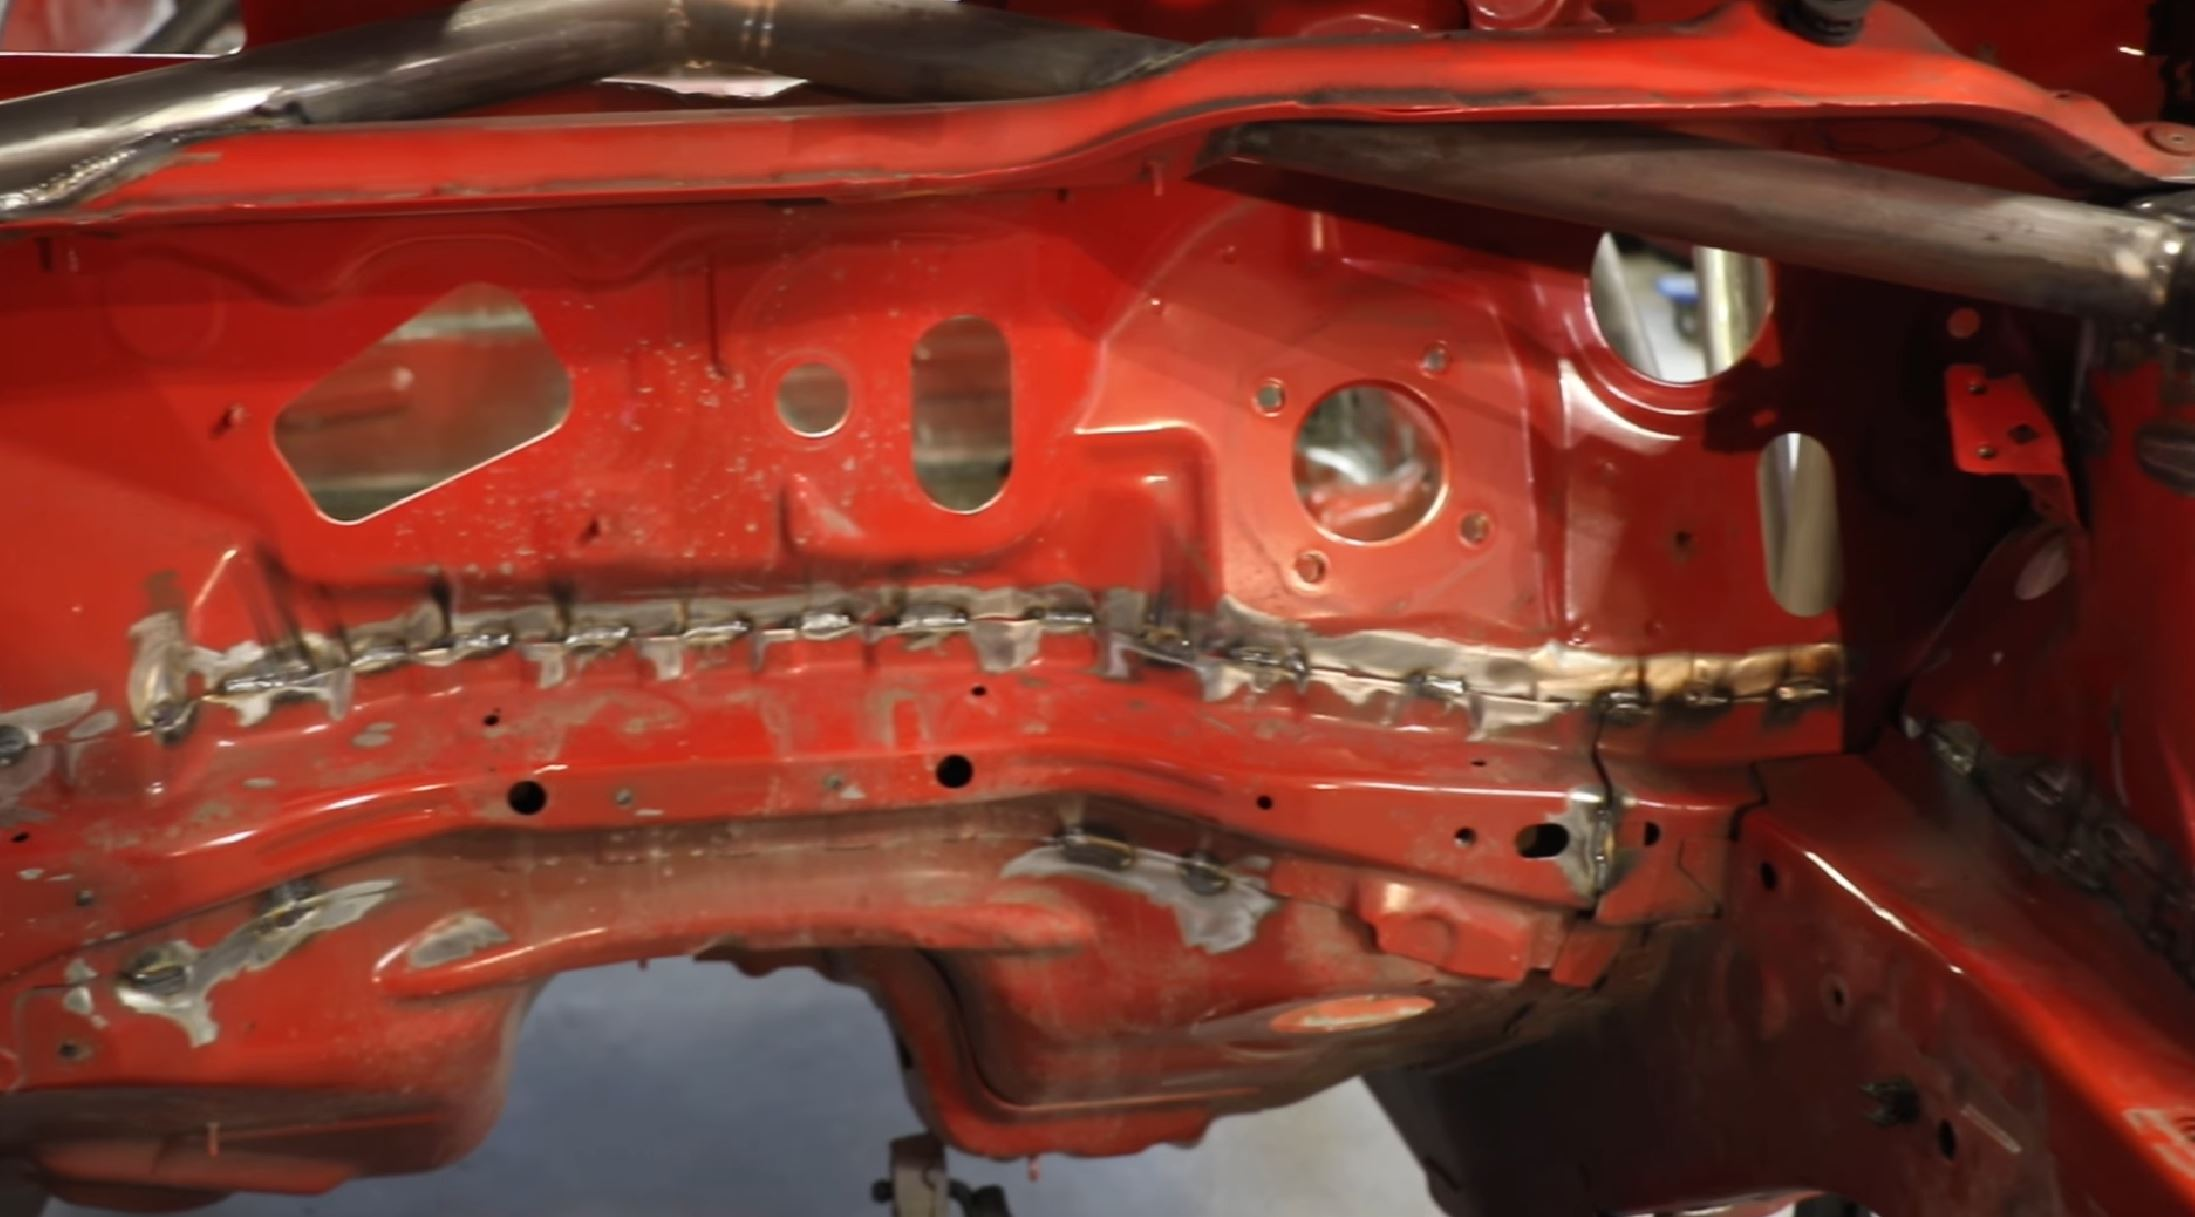 It's Not Just The Cage: How Seam Welding A Unibody Car Can Significantly Strengthen The Entire Chassis